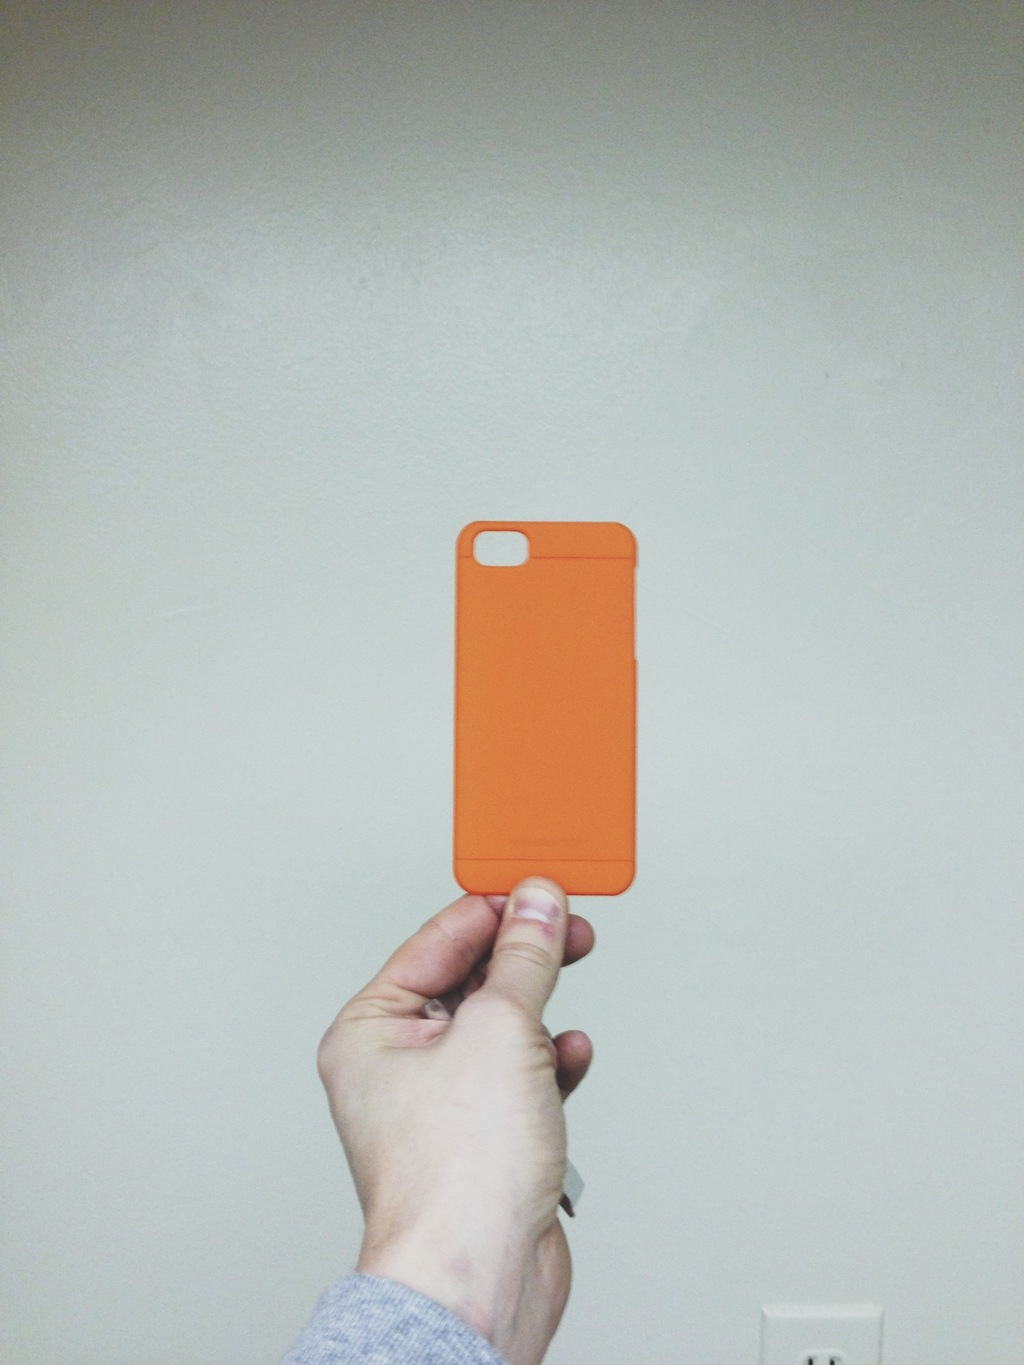 iPhone case being held